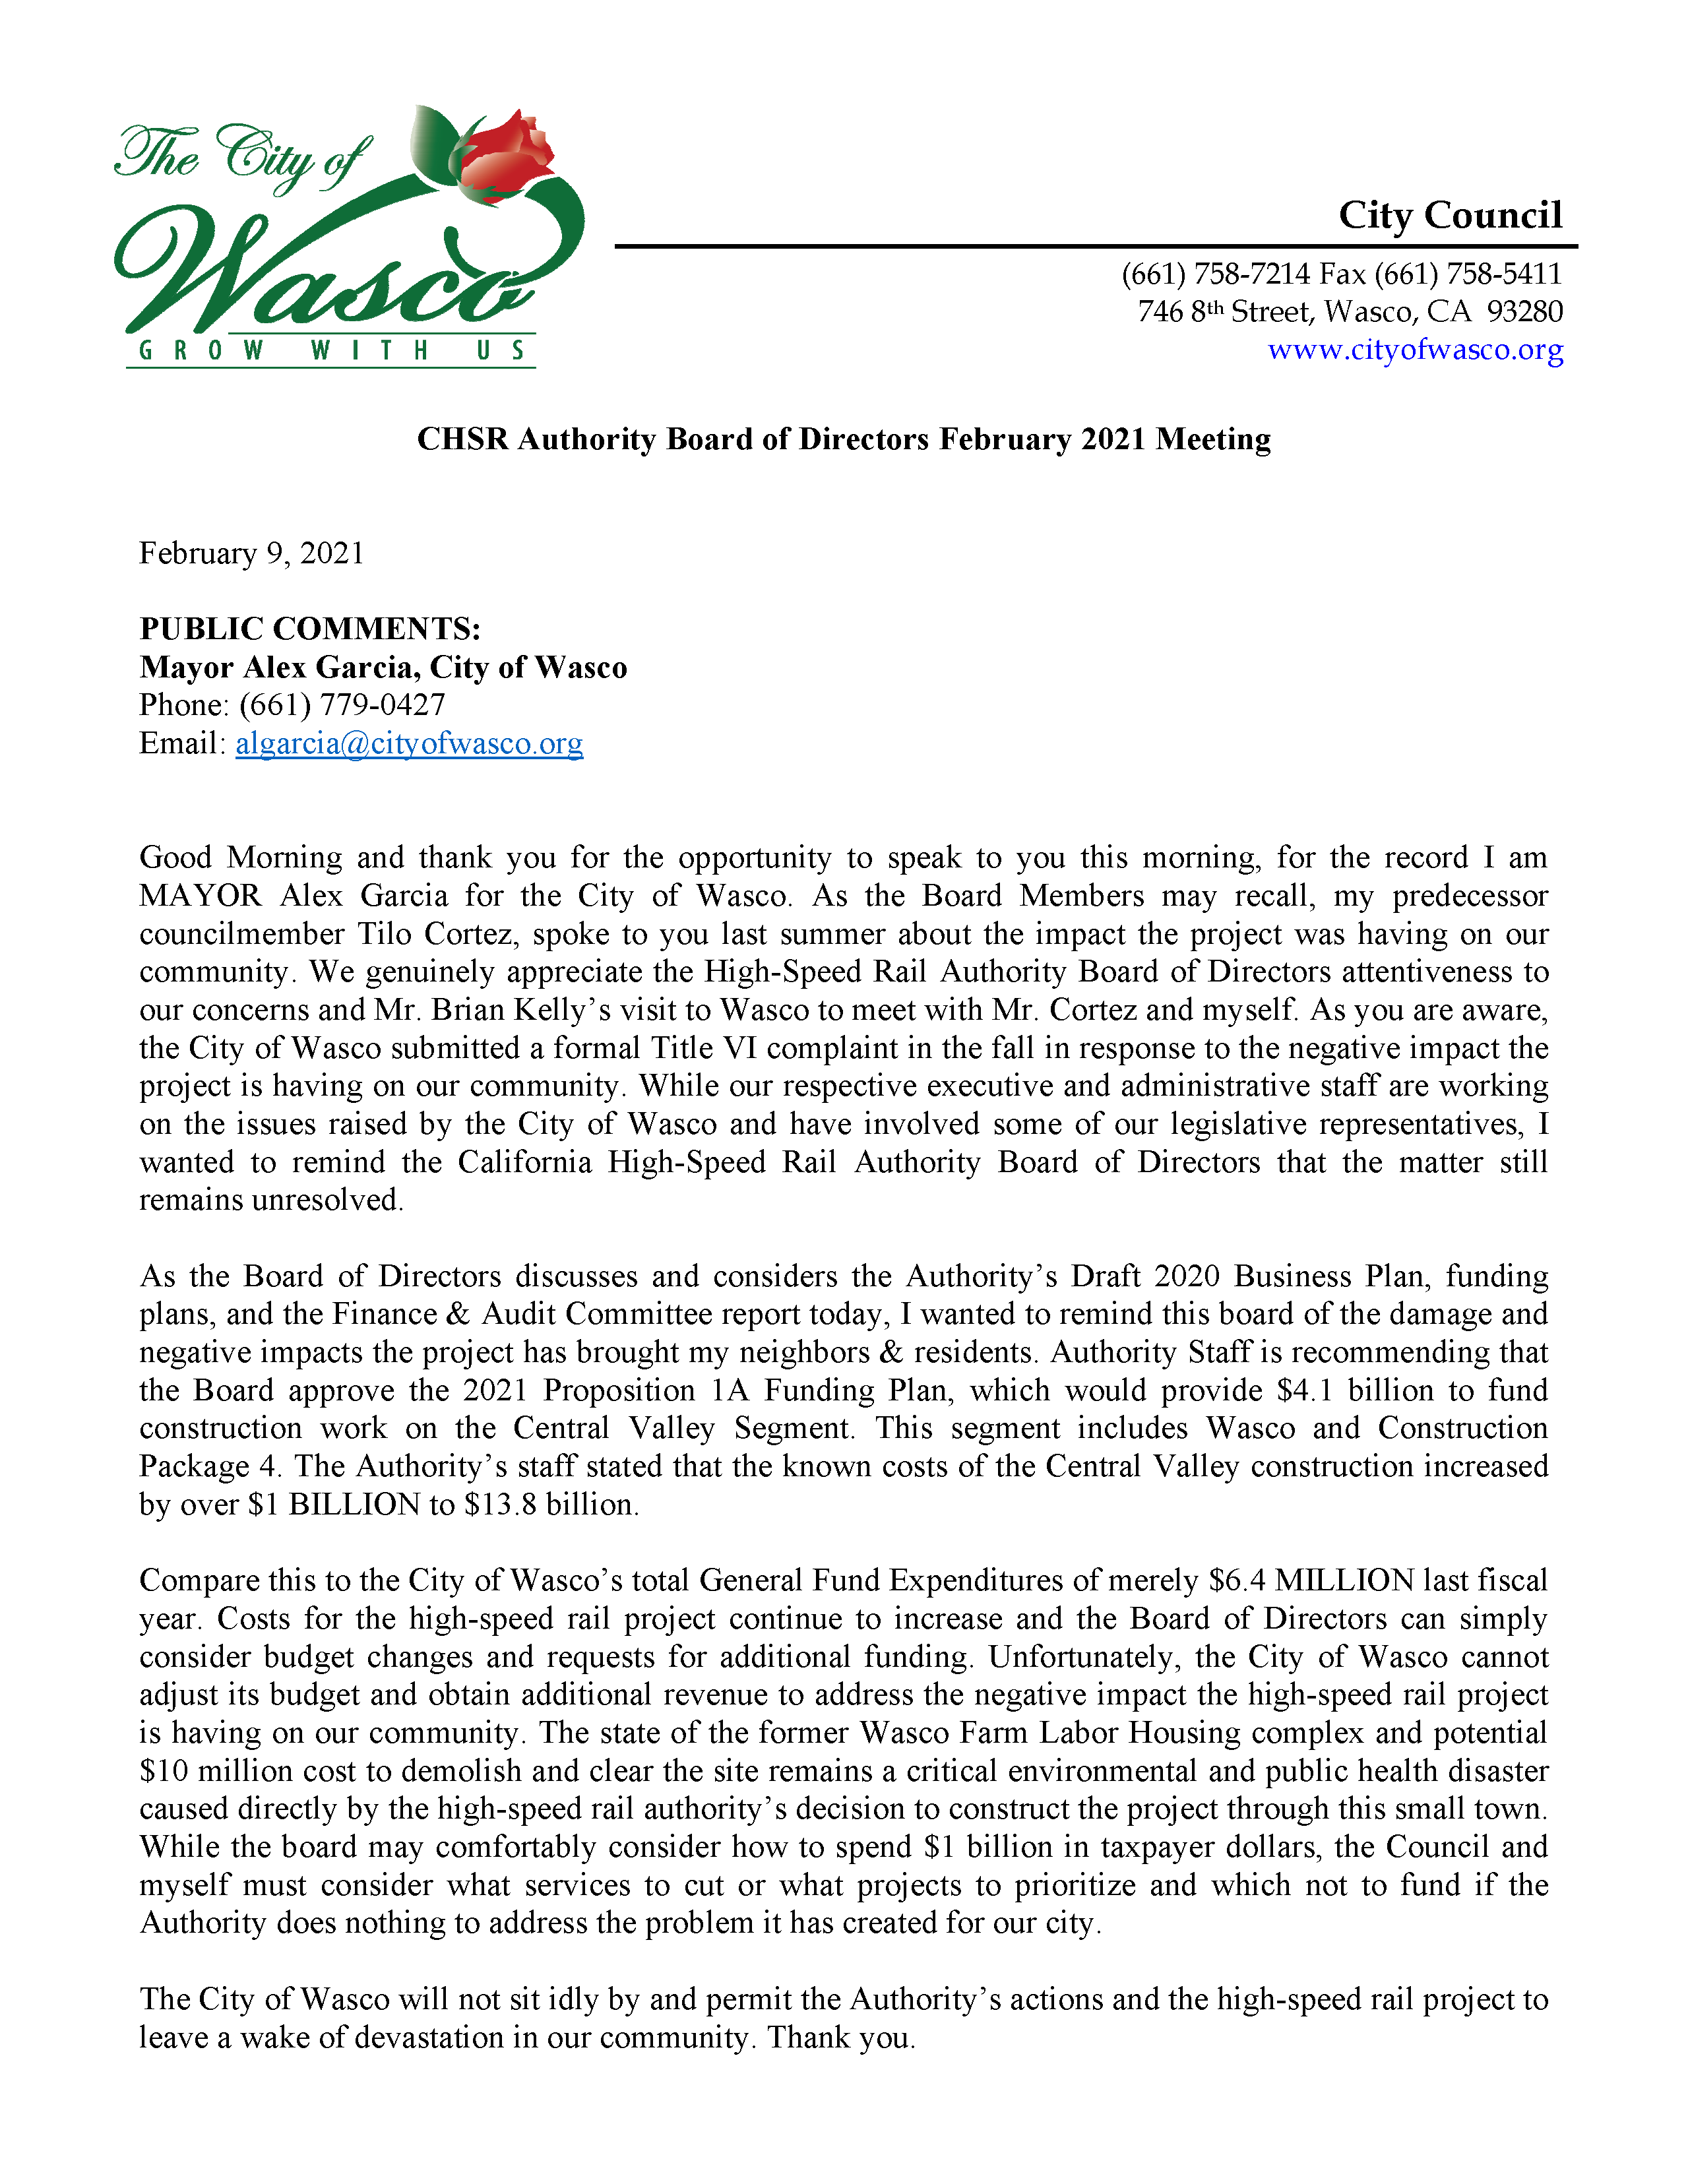 8 HSRA BoD_Wasco Mayors Public Comments 02092021 Opens in new window